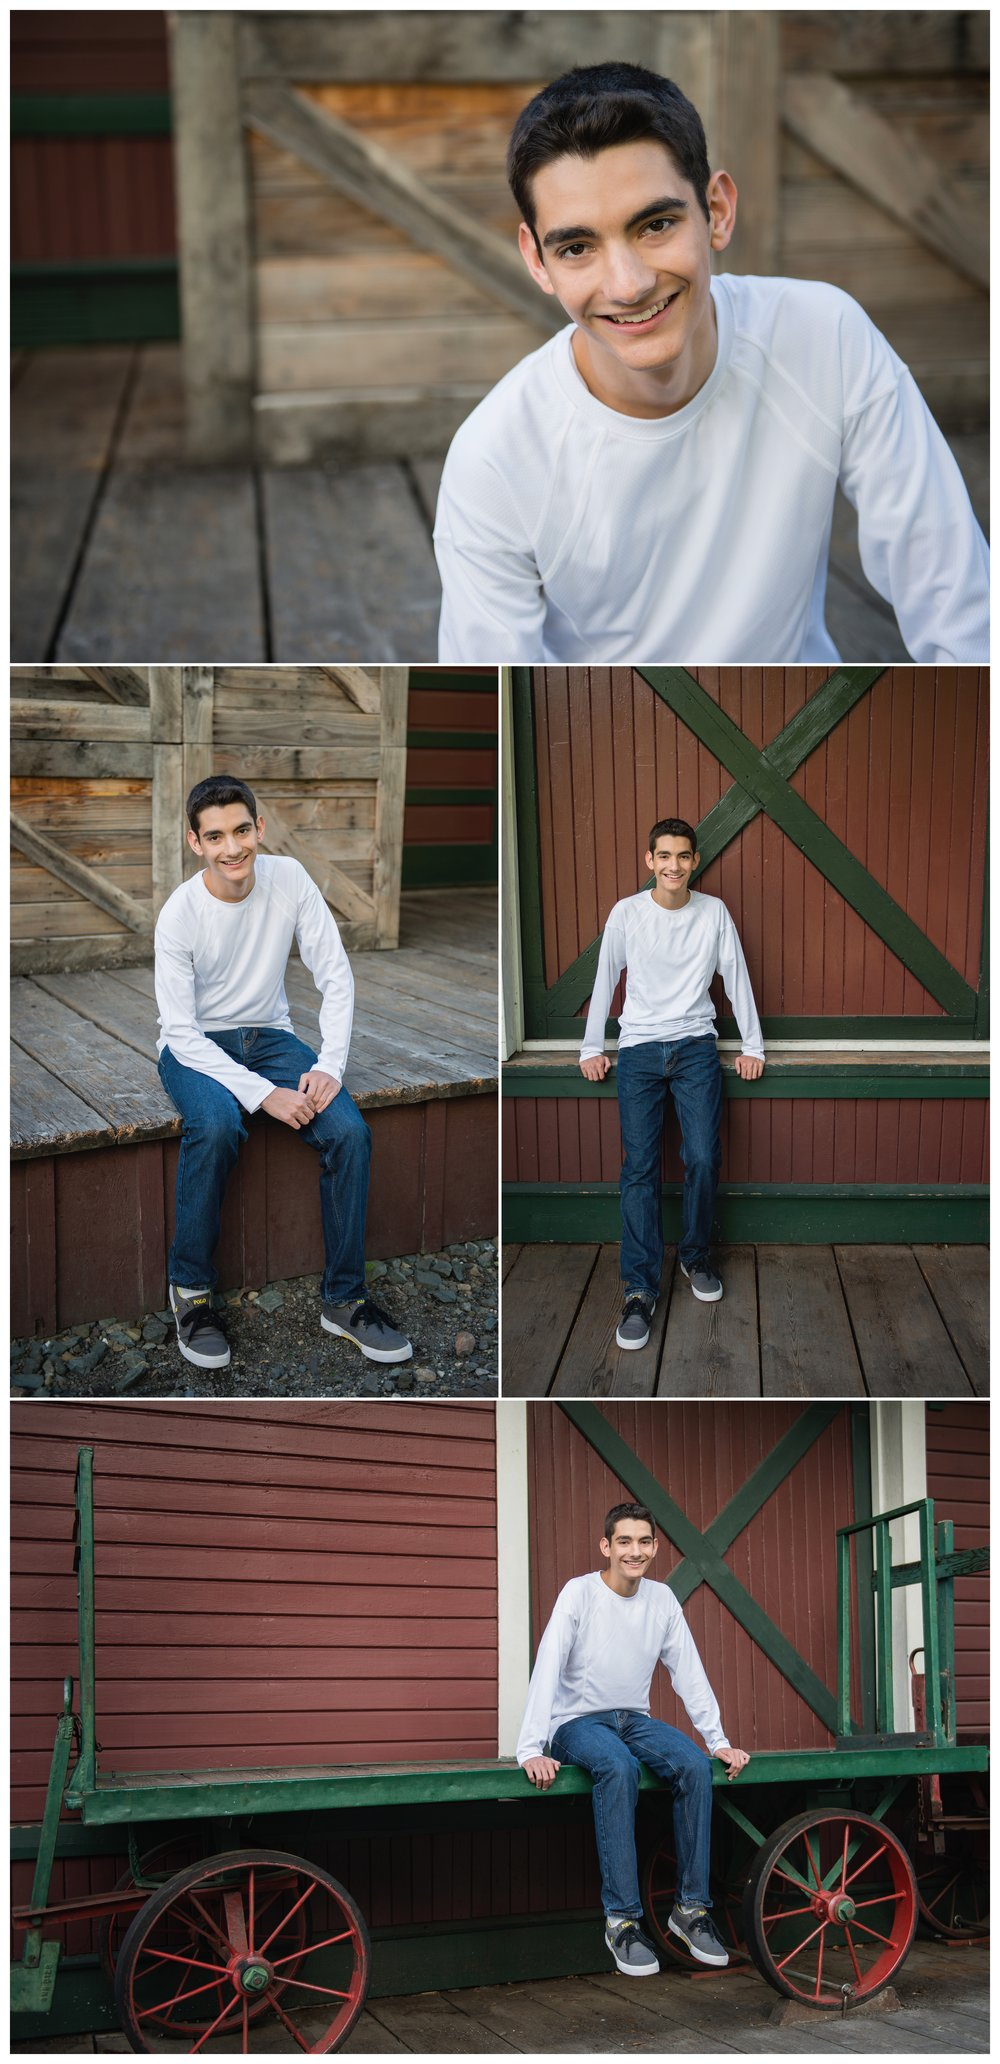 Mary Vance Photography Senior Guy Photographer Sammamish Washington